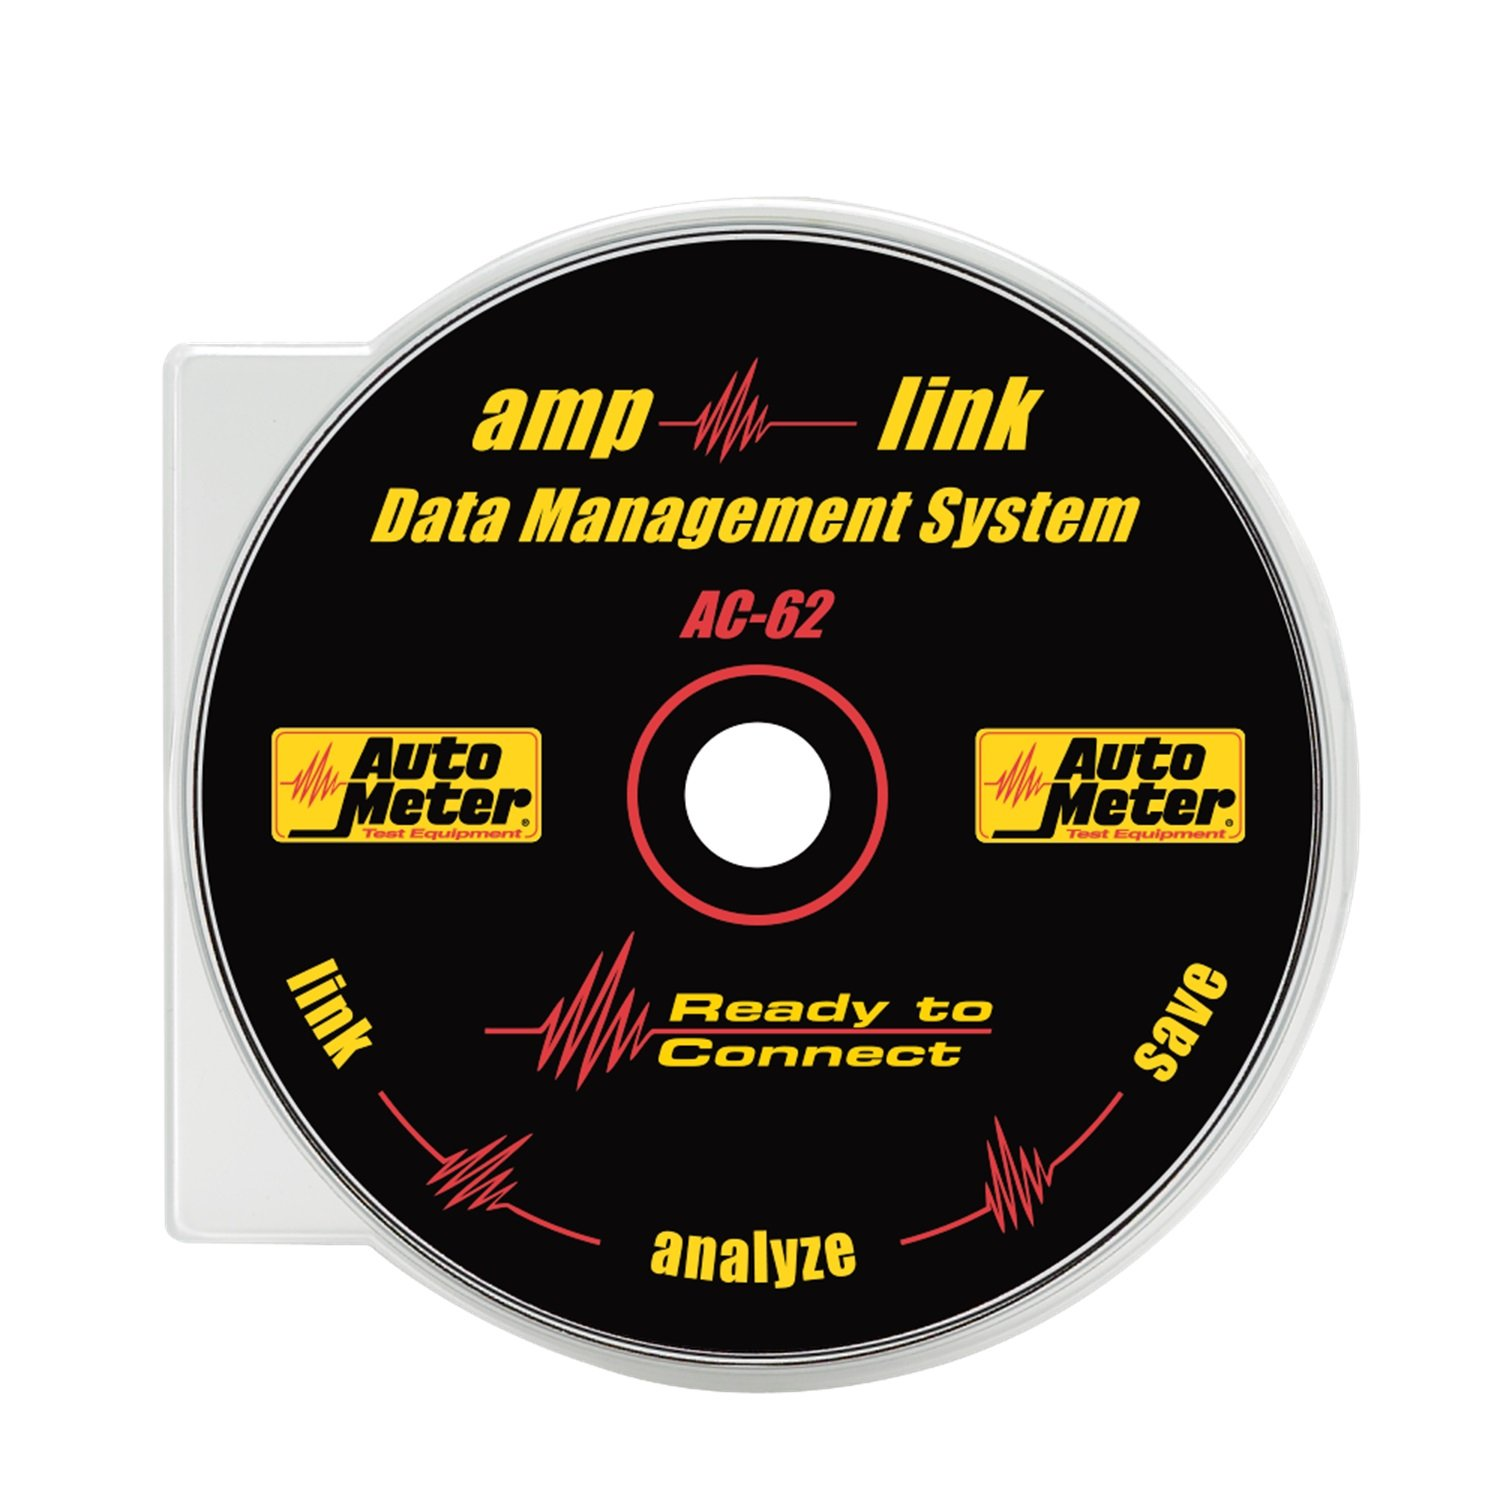 AutoMeter Auto Meter AC-62 Test Equipment Amp-Link Data Download Software